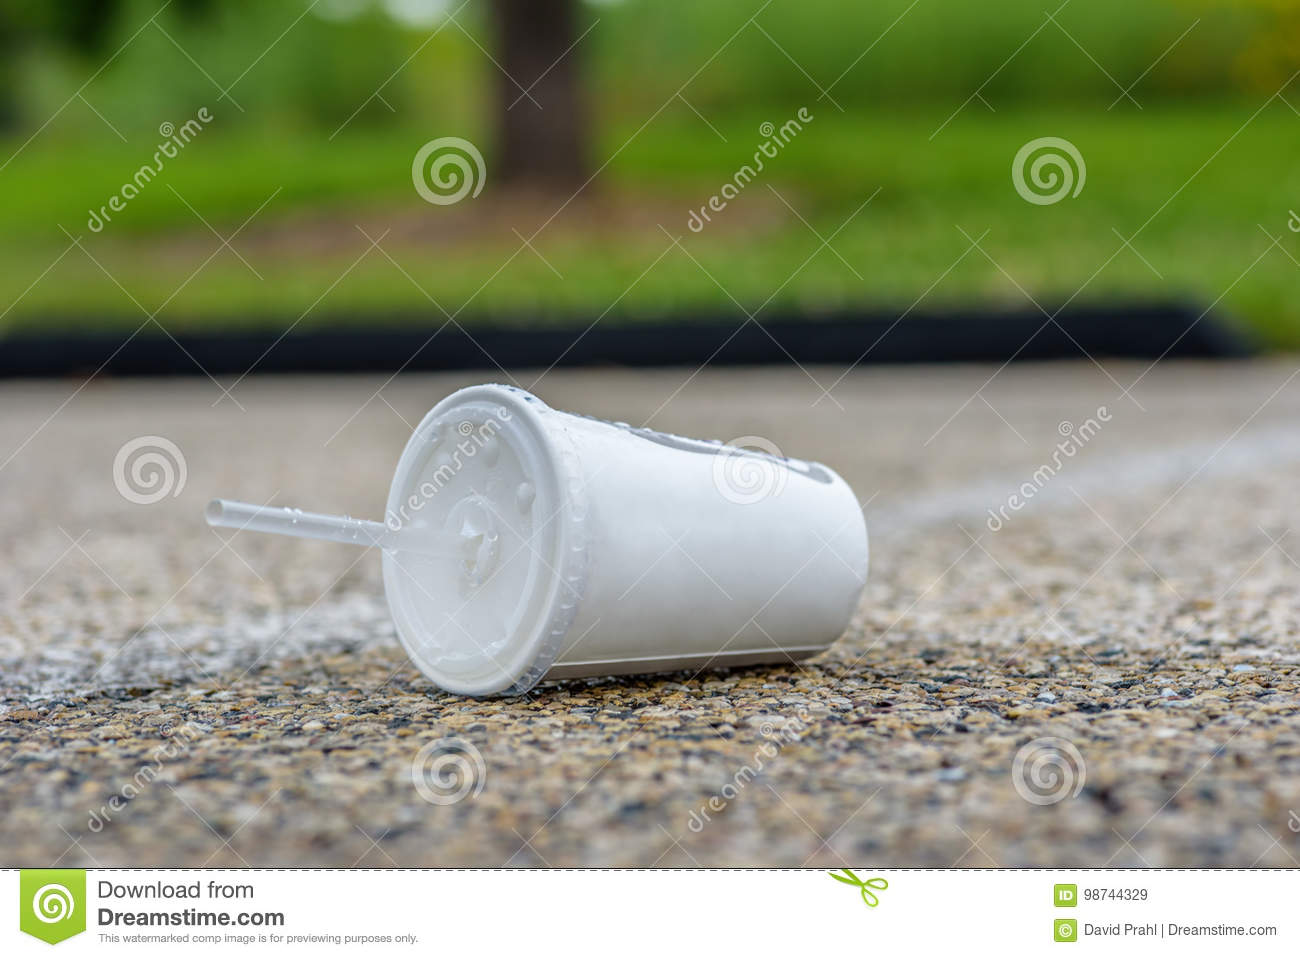 Soft drink cup litter on pavement